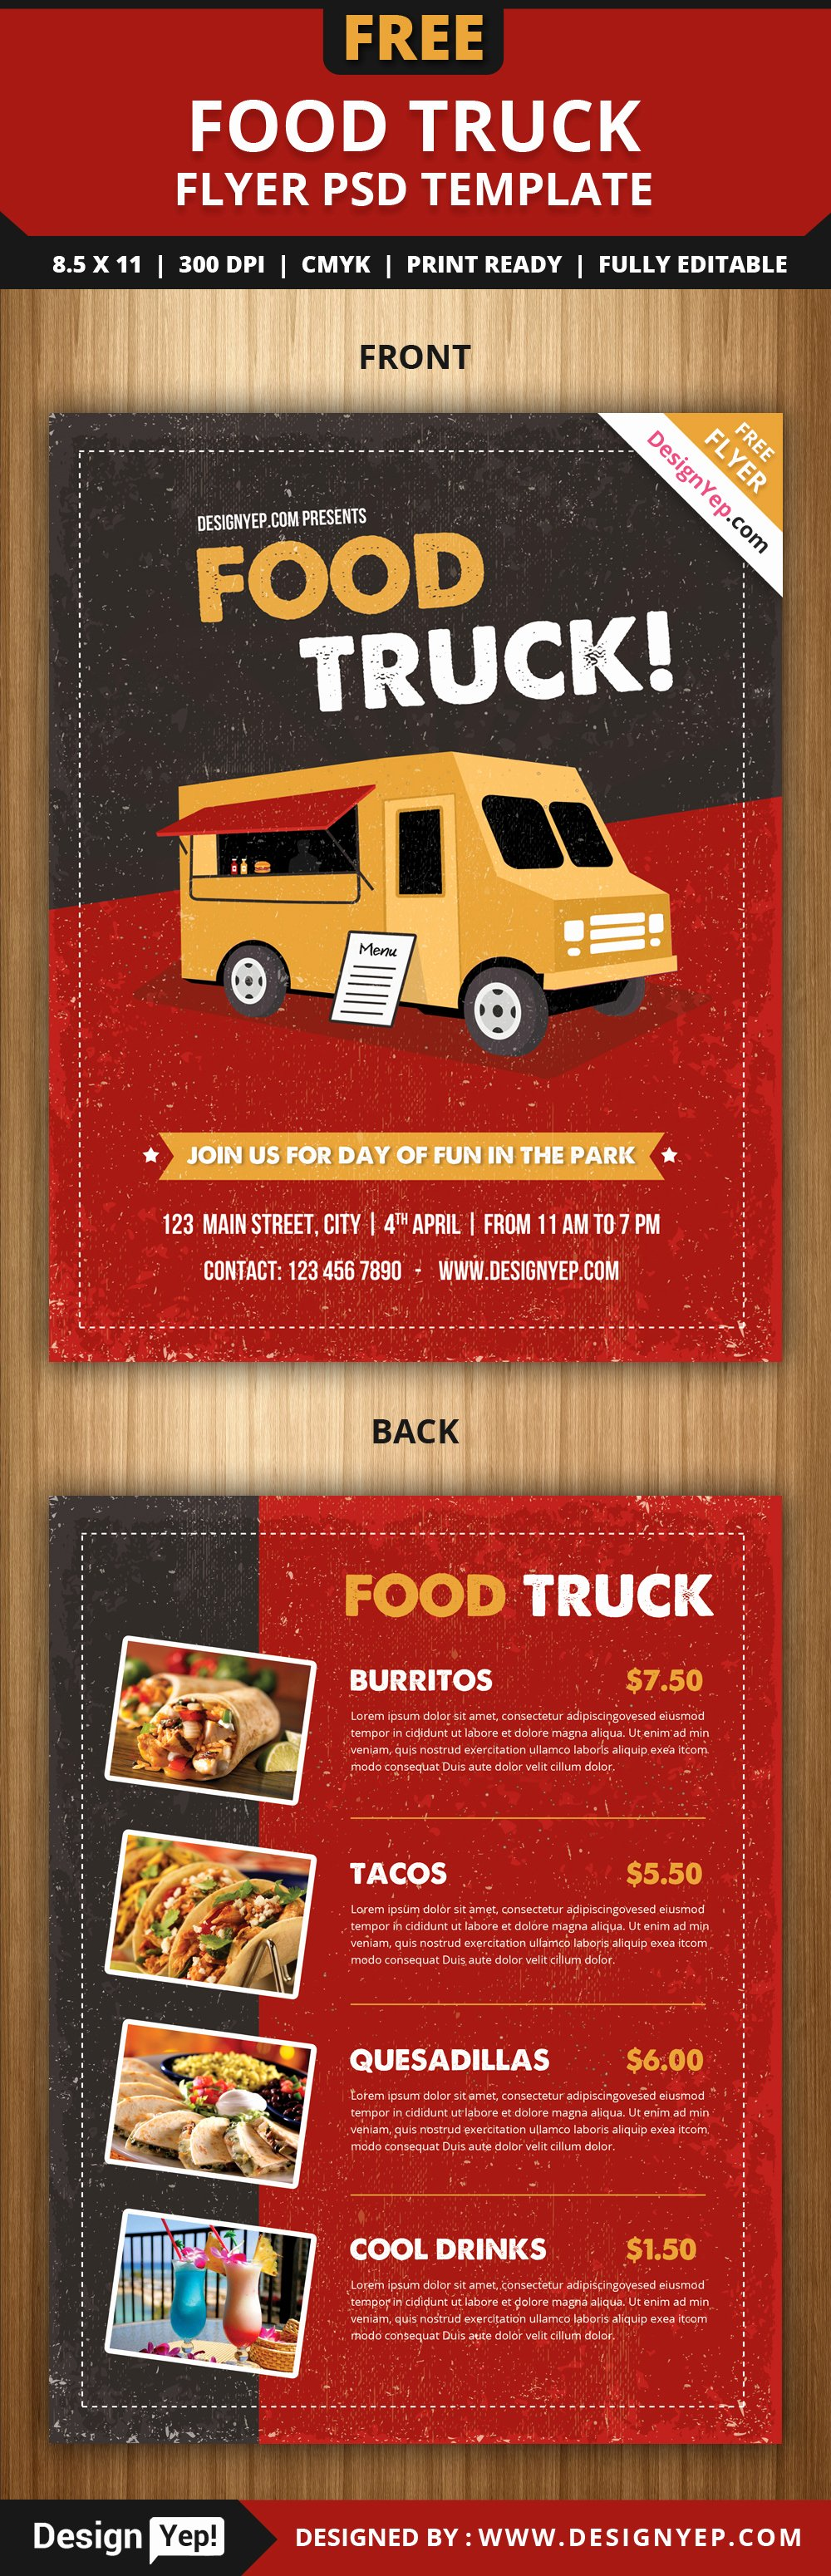 Free Food Truck Flyer Psd Template Designyep